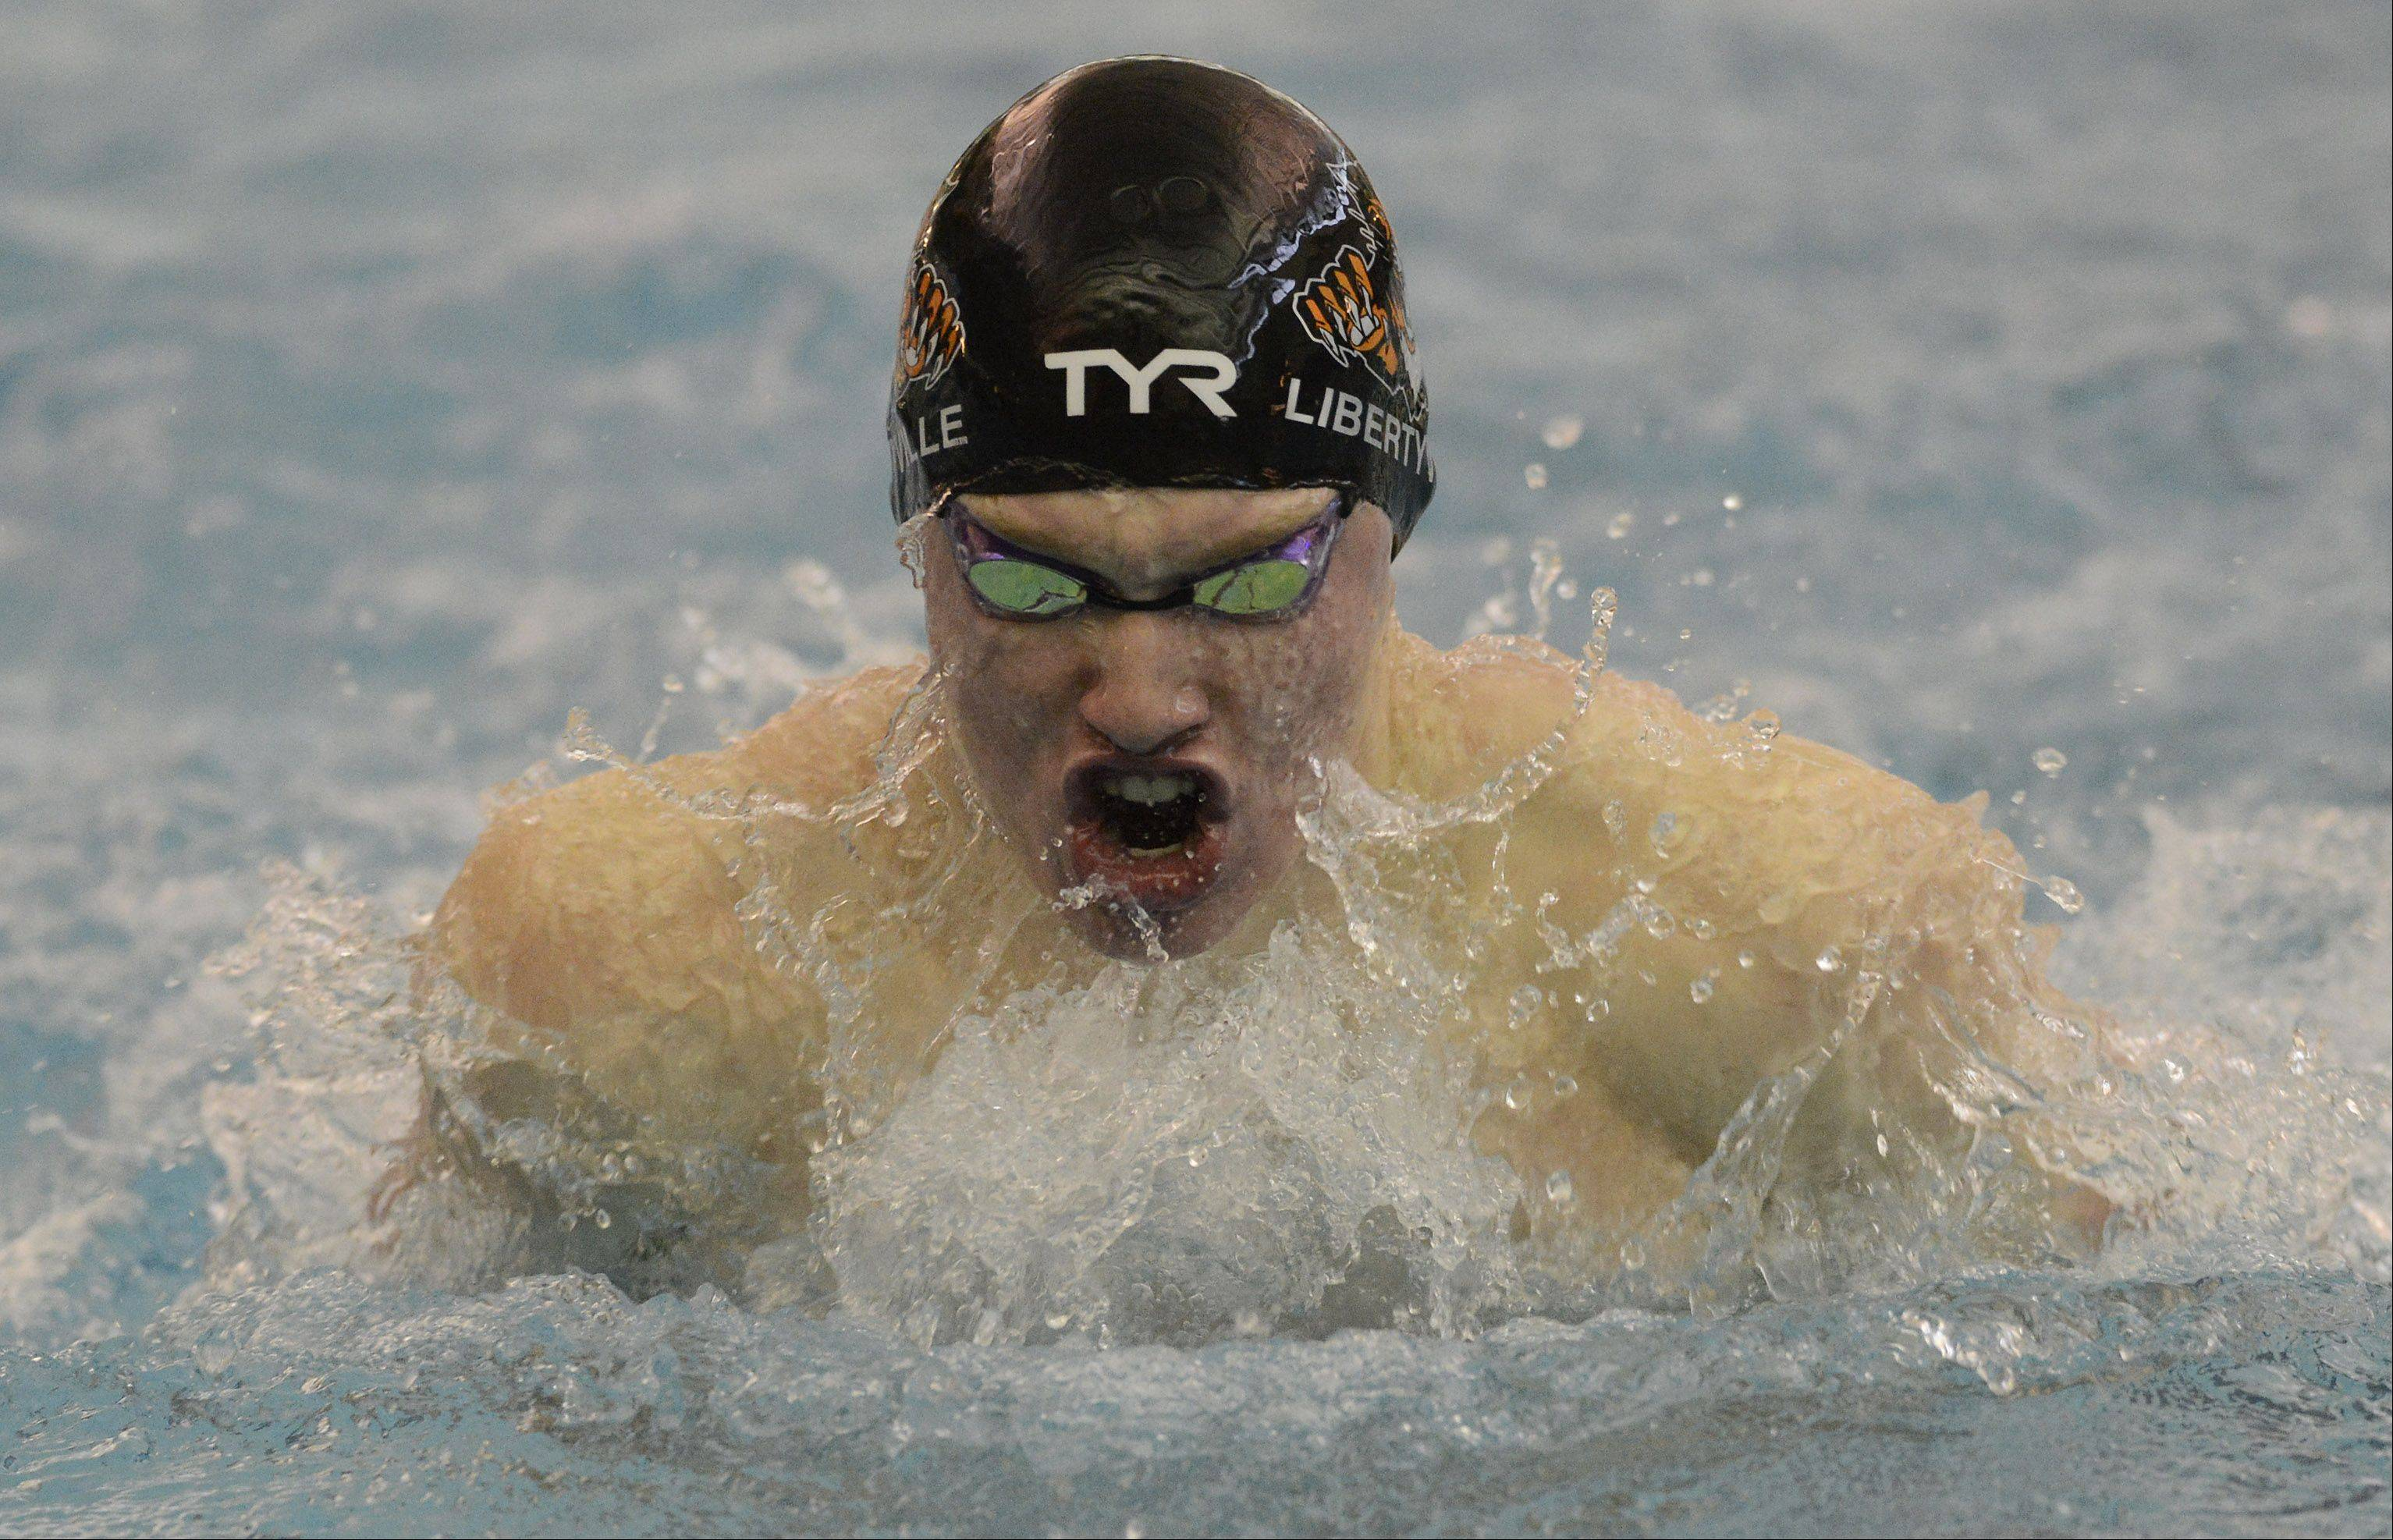 Libertyville's Bobby Snader swims the breaststroke event at the Lake County boys swimming meet in Lincolnshire Saturday.